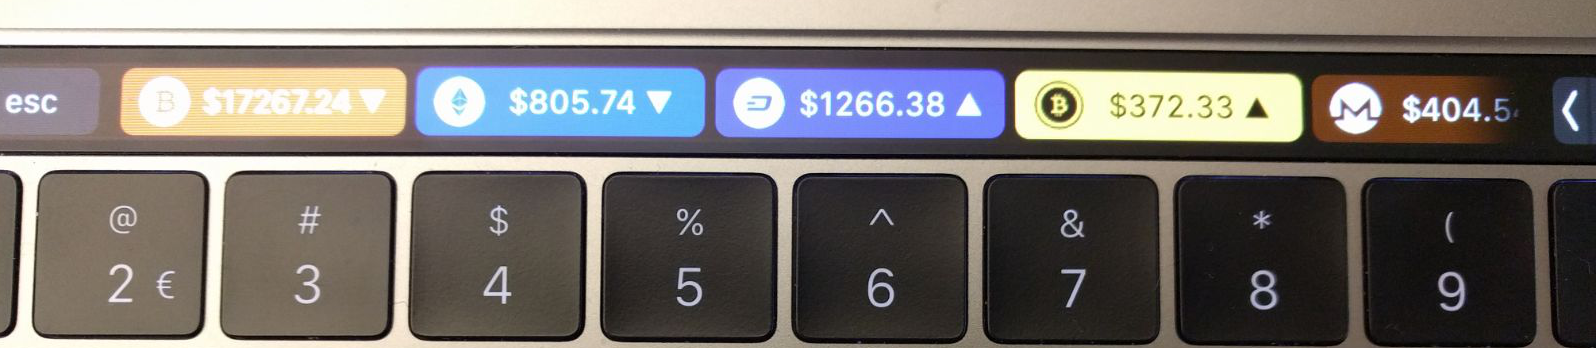 Building a Crypto Price Tracker for Touch Bar - ITNEXT